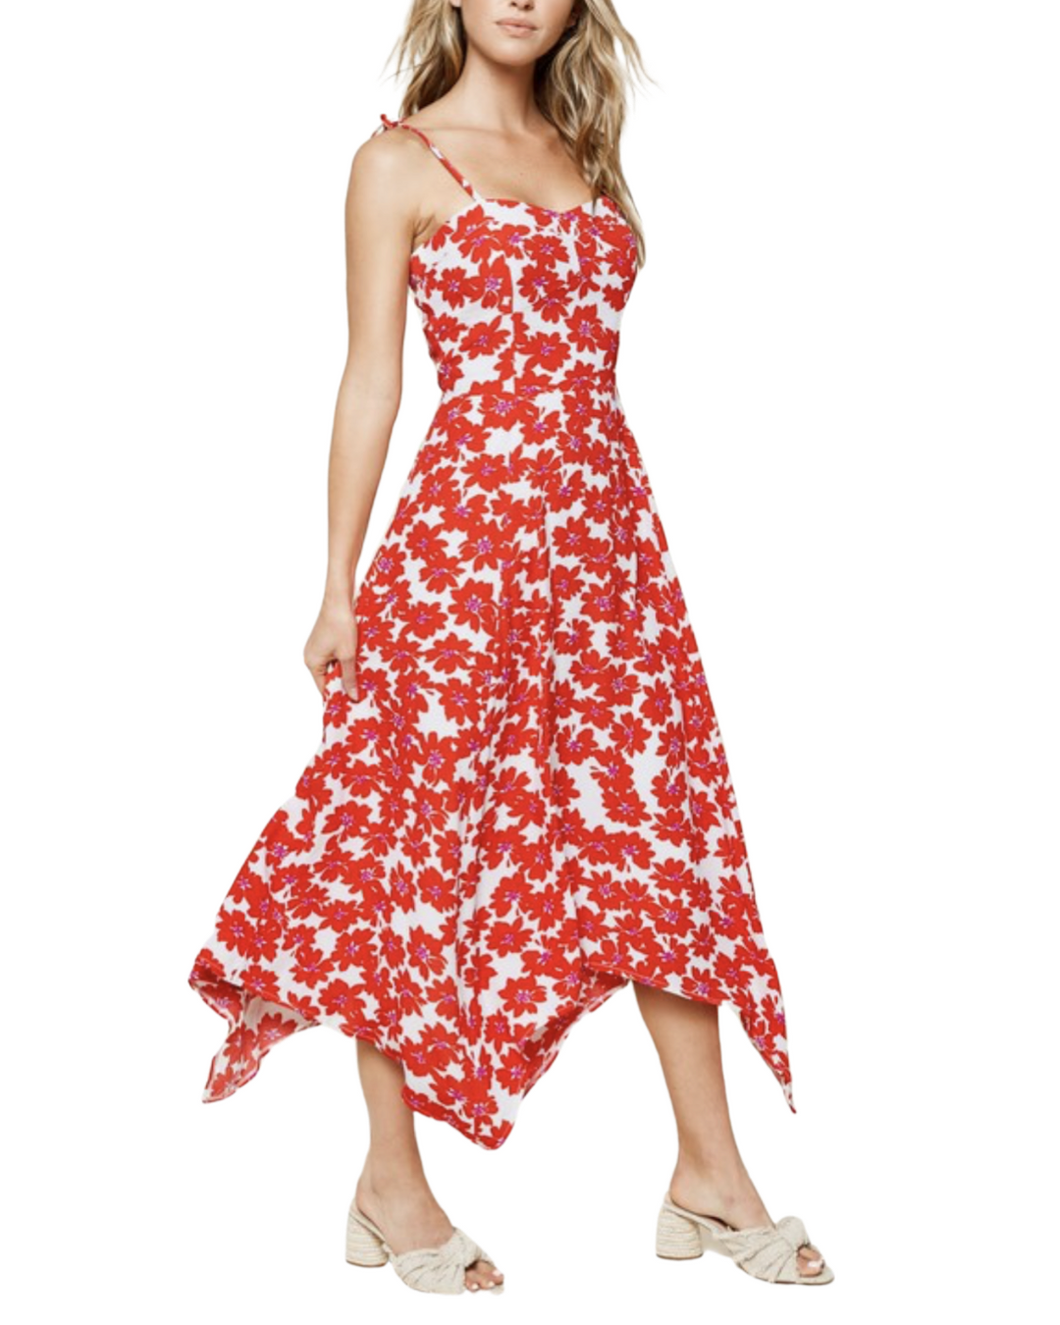 RED + WHITE FLORAL MAXI DRESS